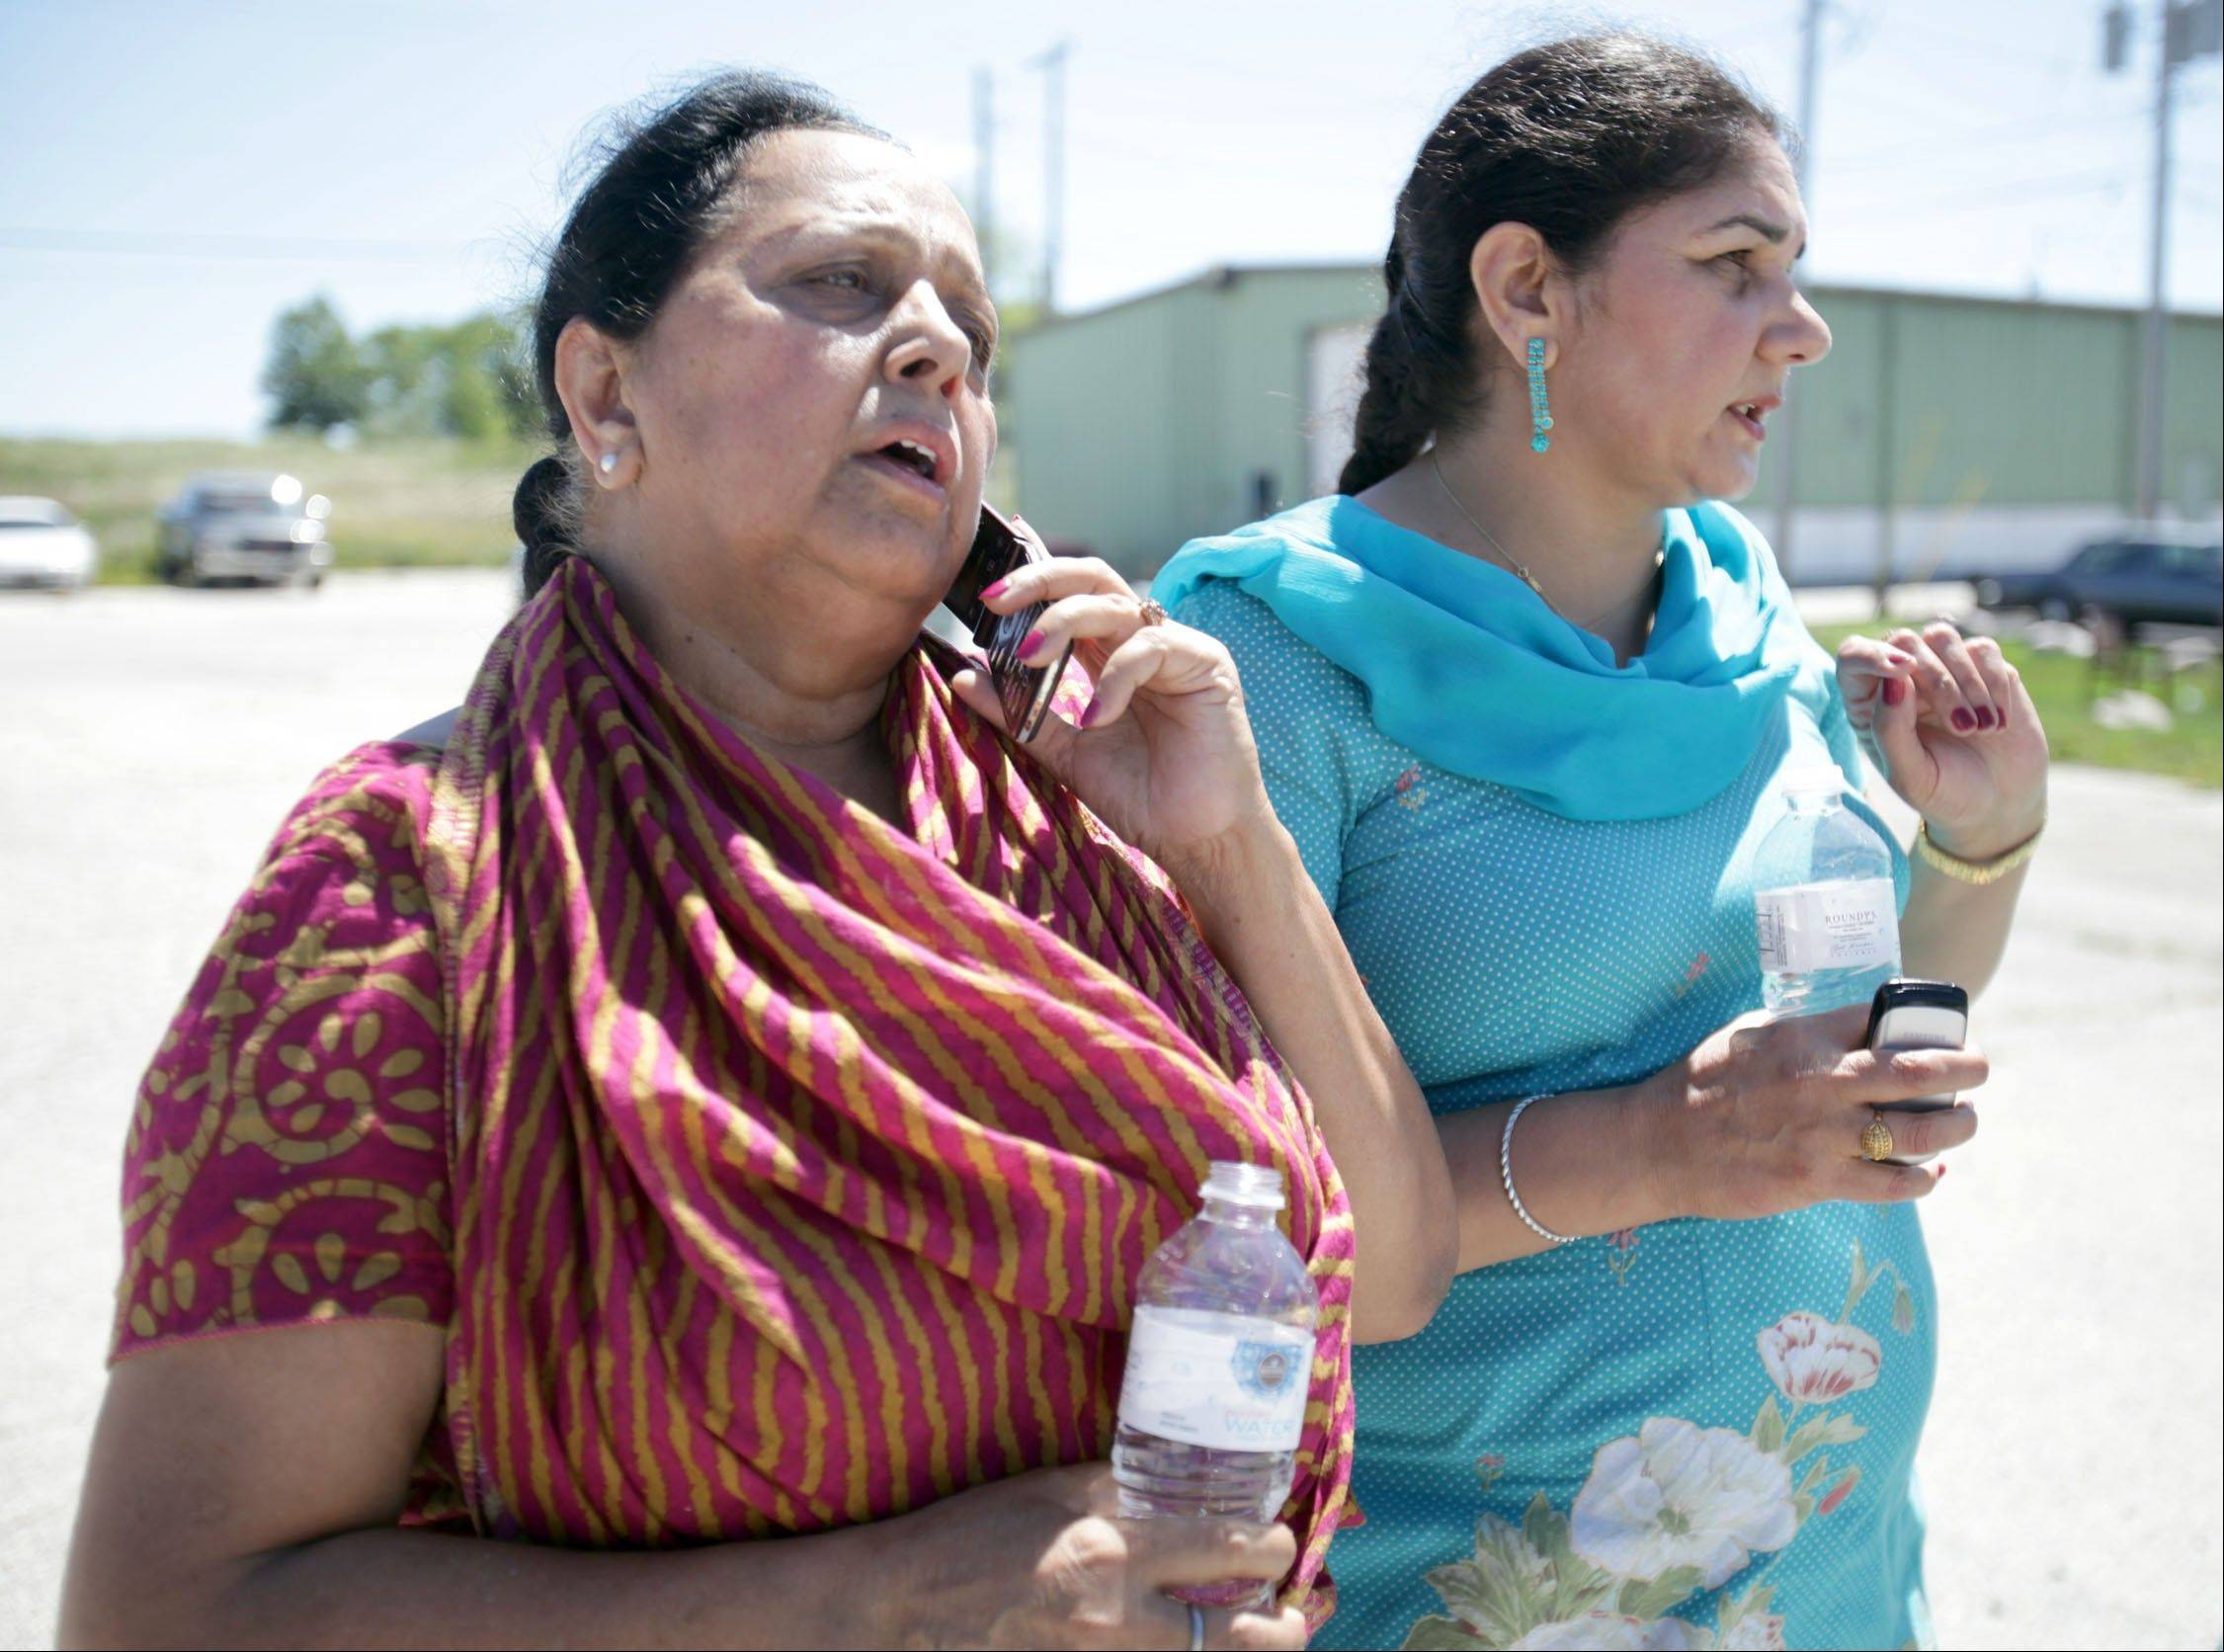 Parminder Kaleka, left, who said her brother-in-law was in the Sikh temple in Oak Creek, Wis., where a shooting occurred, uses a phone to try to get more information on Sunday.